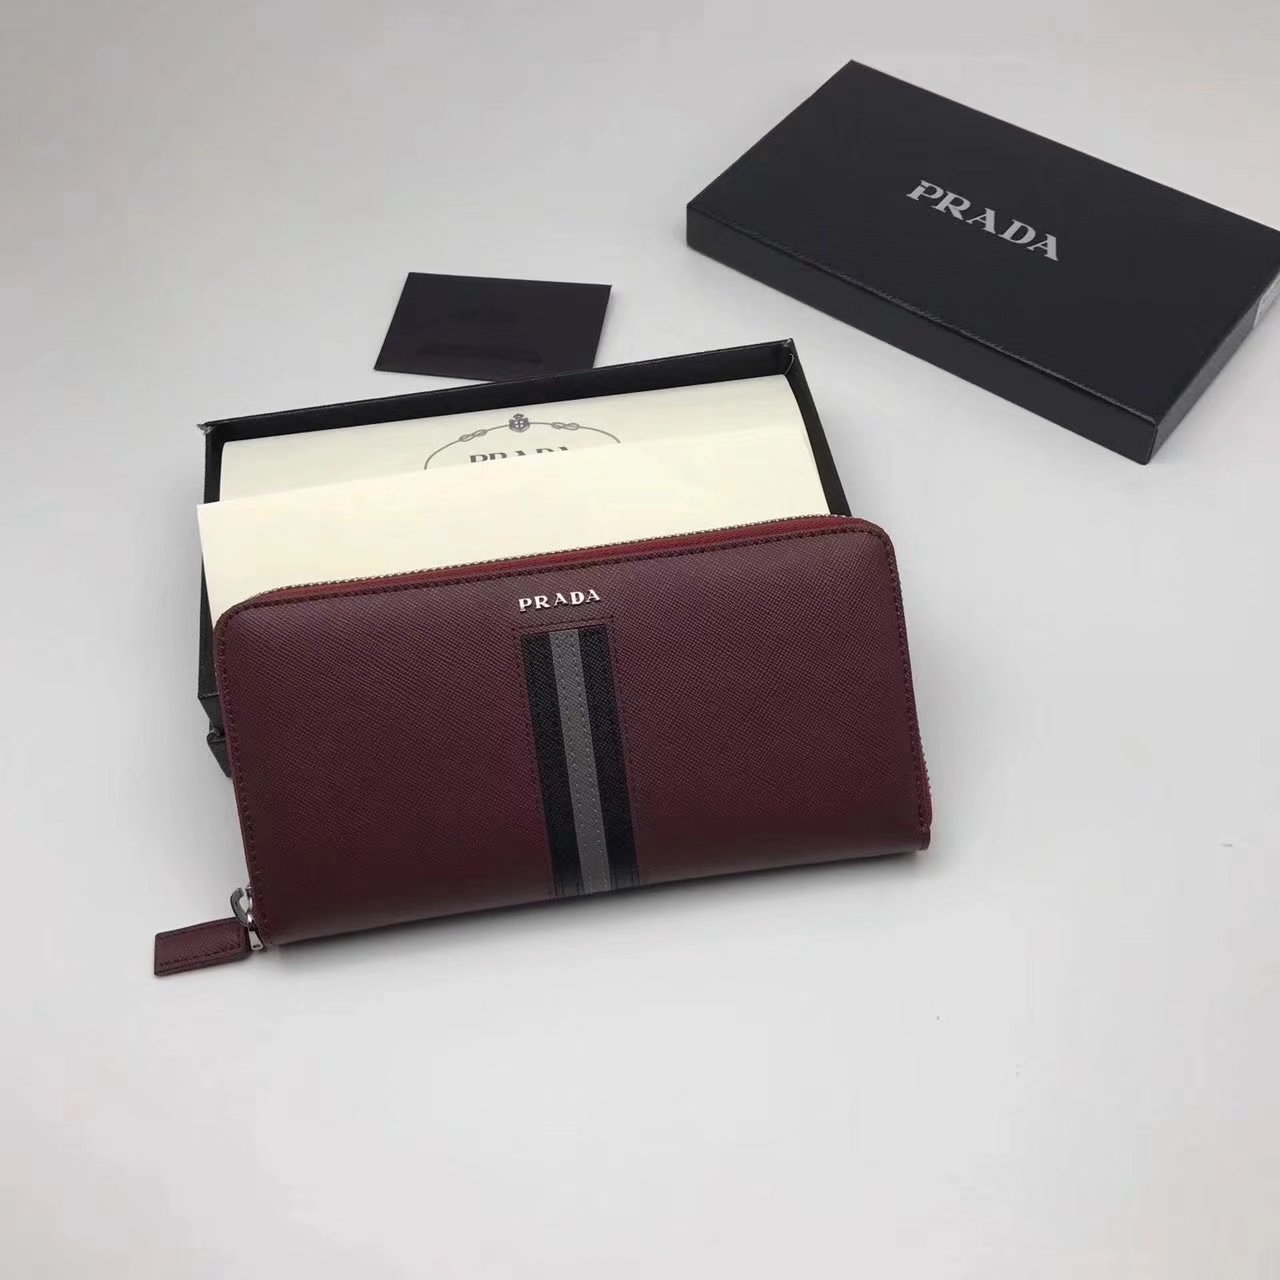 Prada 2M1317 Men Document Holder Saffiano Leather Long Wallet Red